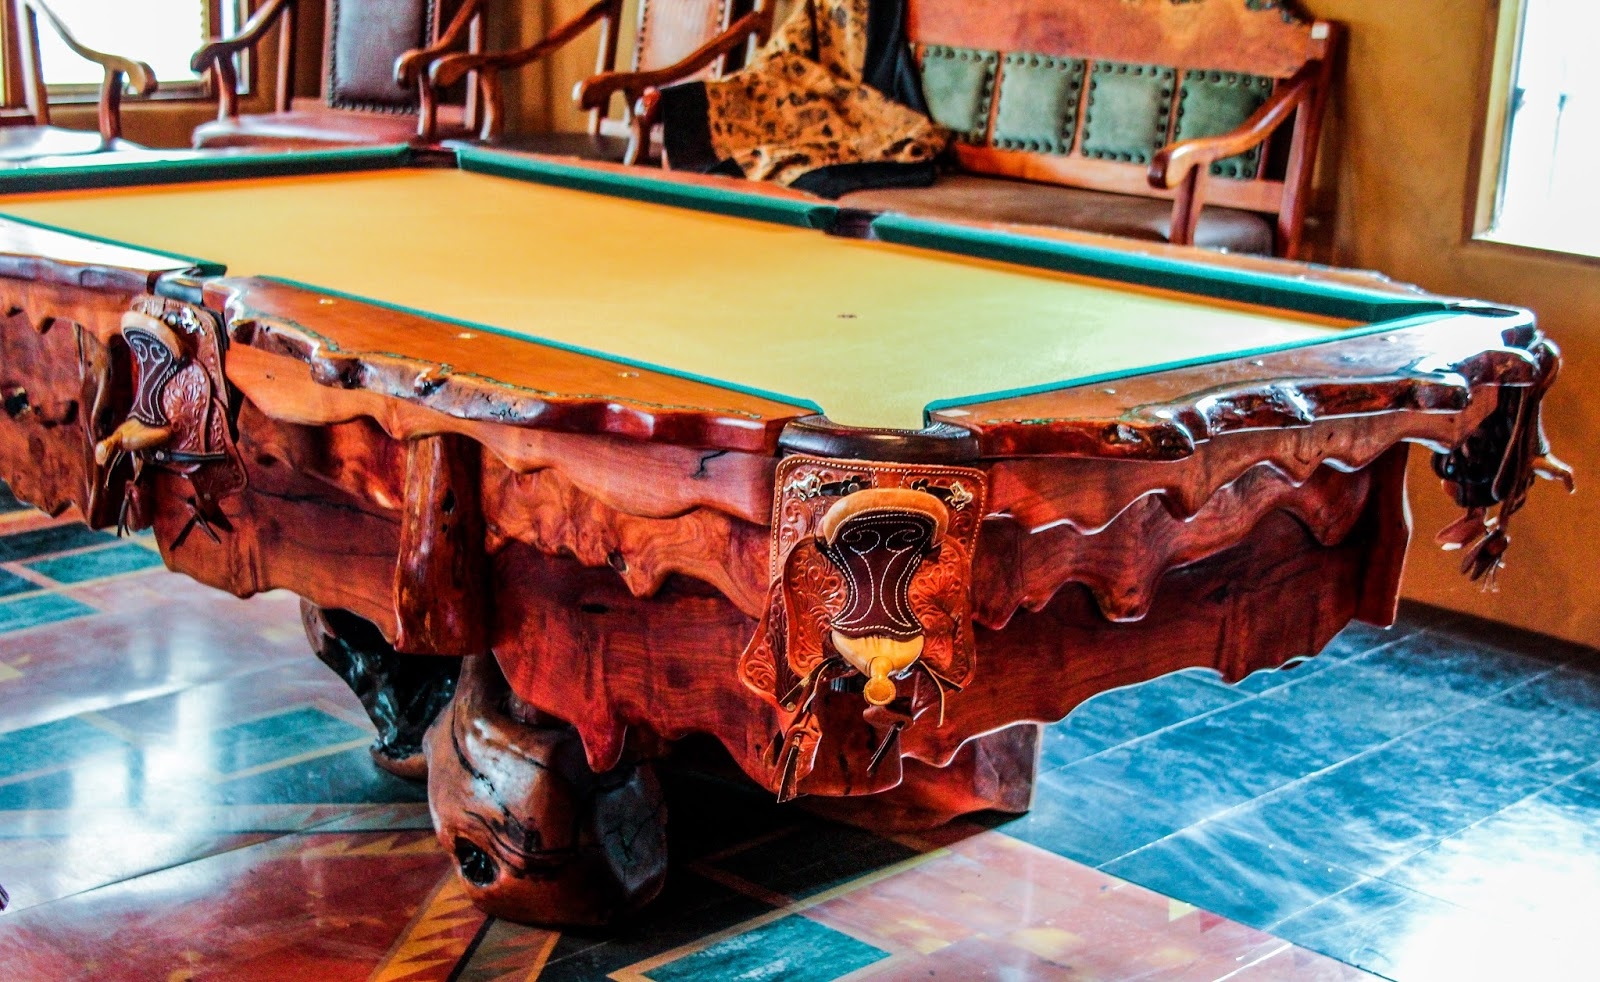 Mesquite Pool Table With Inlaid Kingman Turquoise